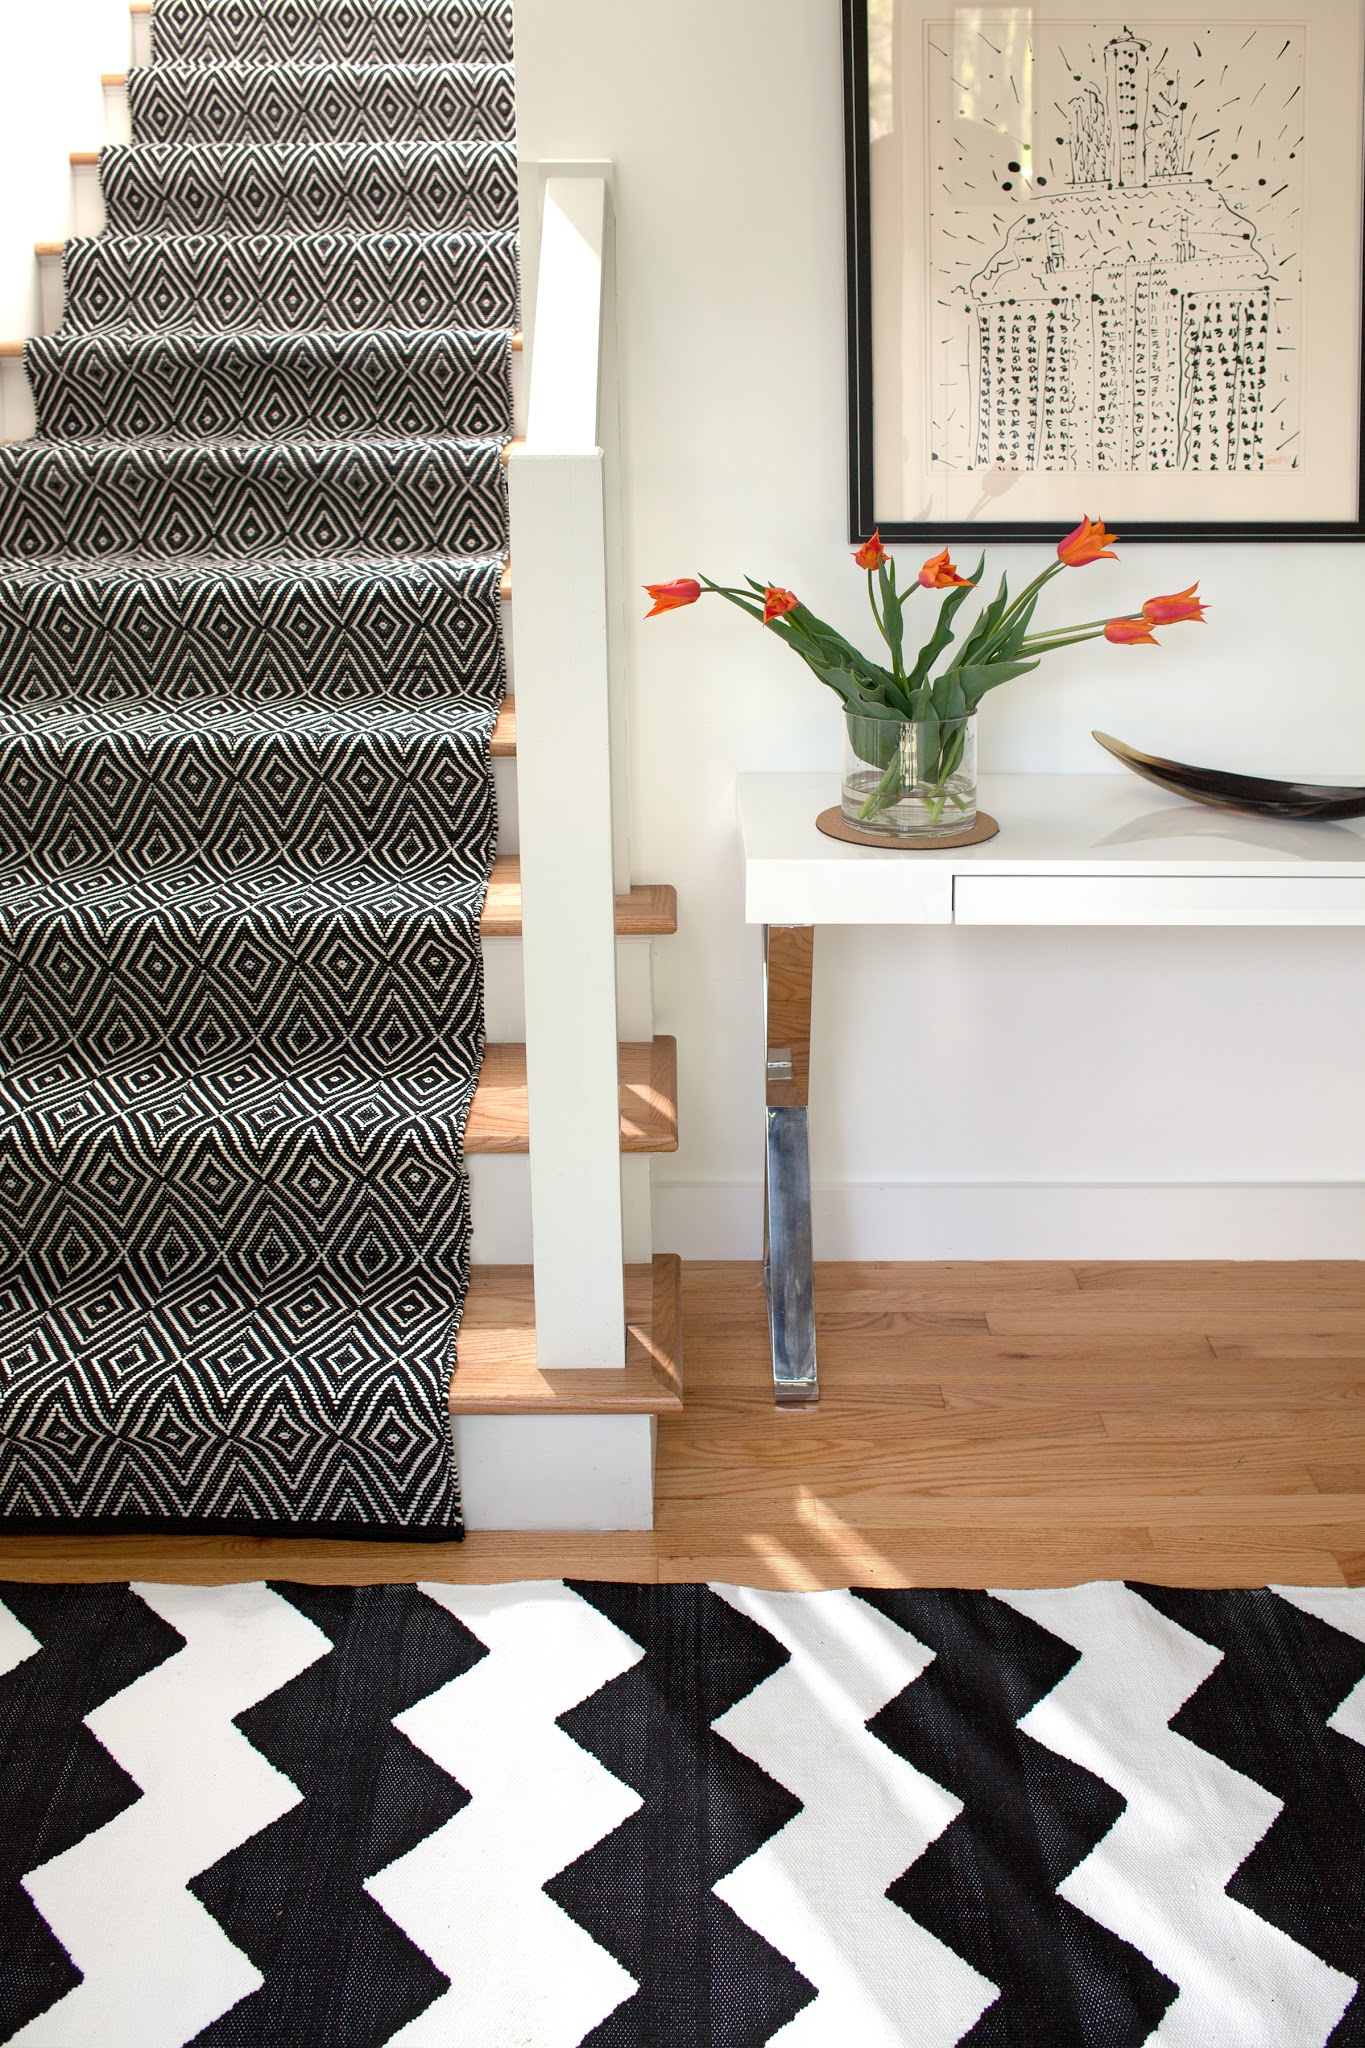 Amazing dash and albert runner at home stairways combinet with laminate floor stairs